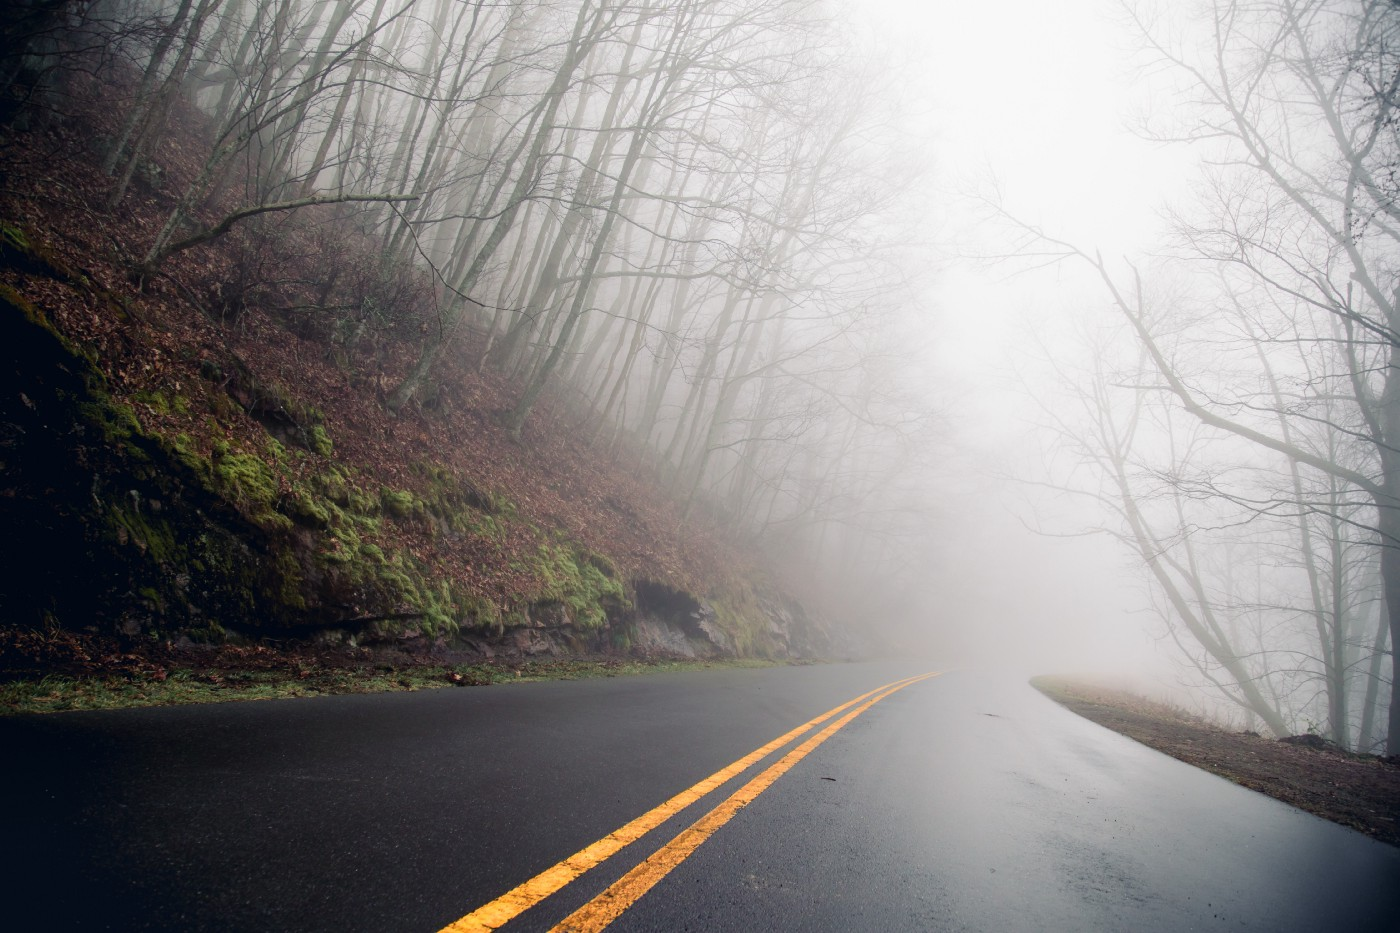 photo of an asphalt road with bare trees on either side disappearing into grey fog.